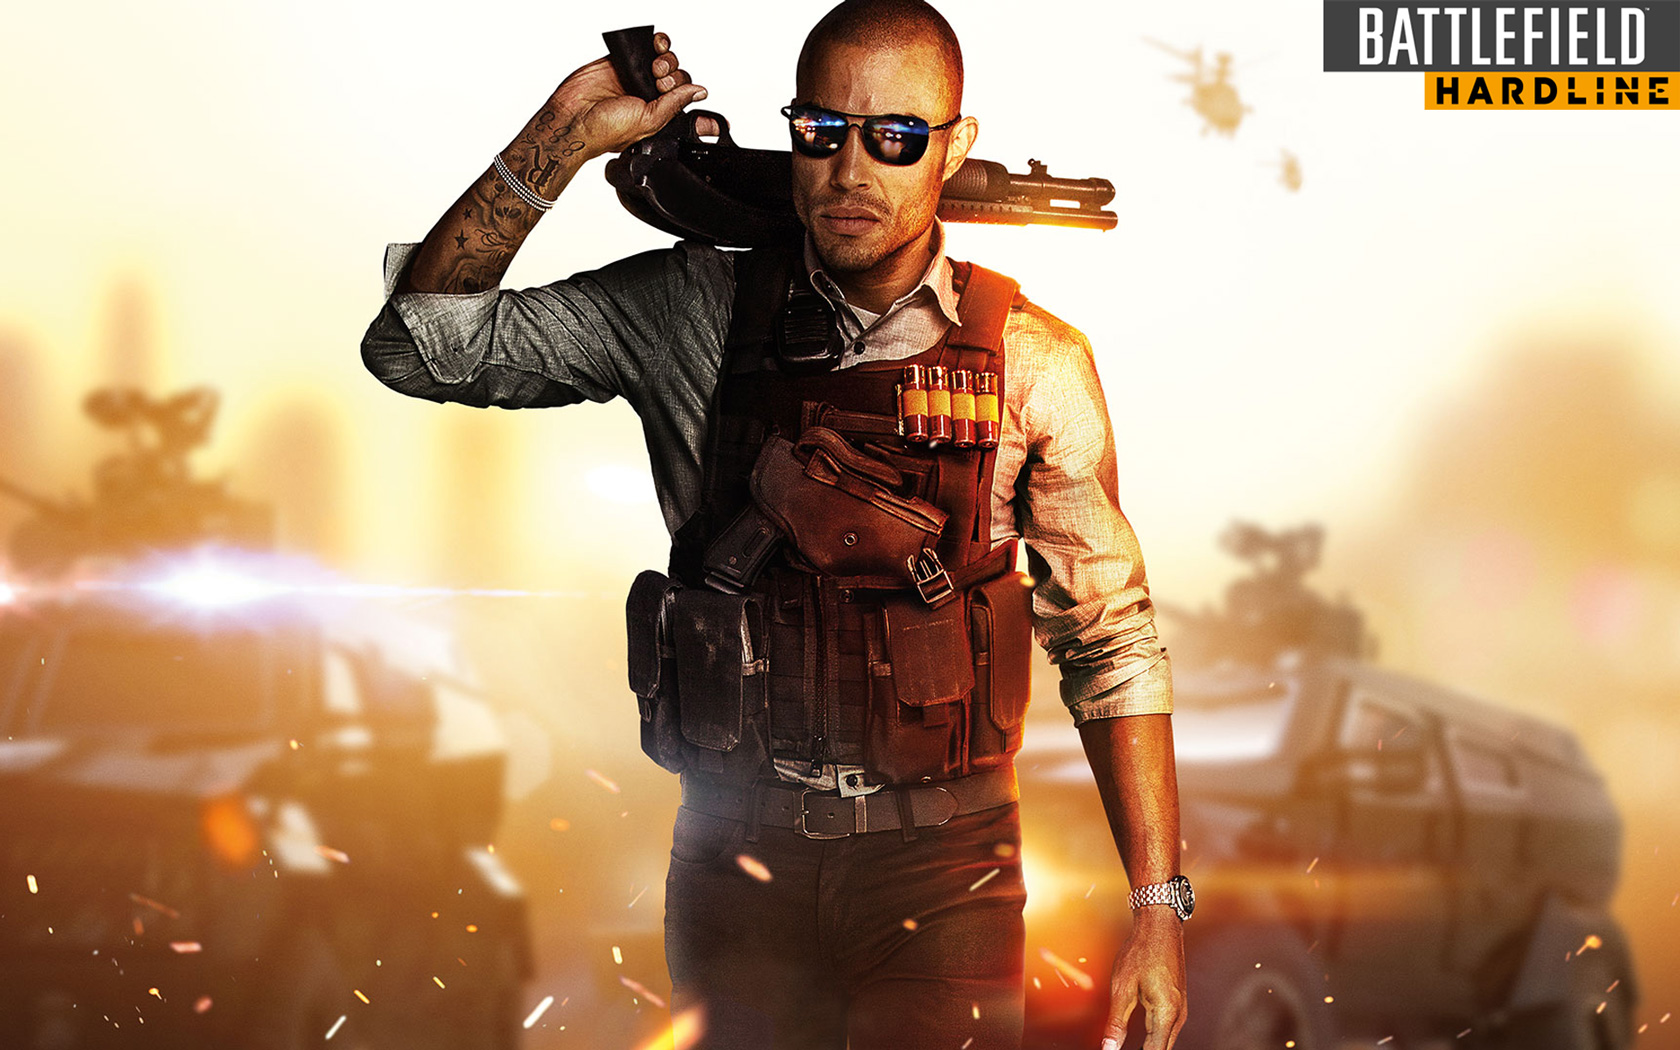 Free Battlefield: Hardline Wallpaper in 1680x1050